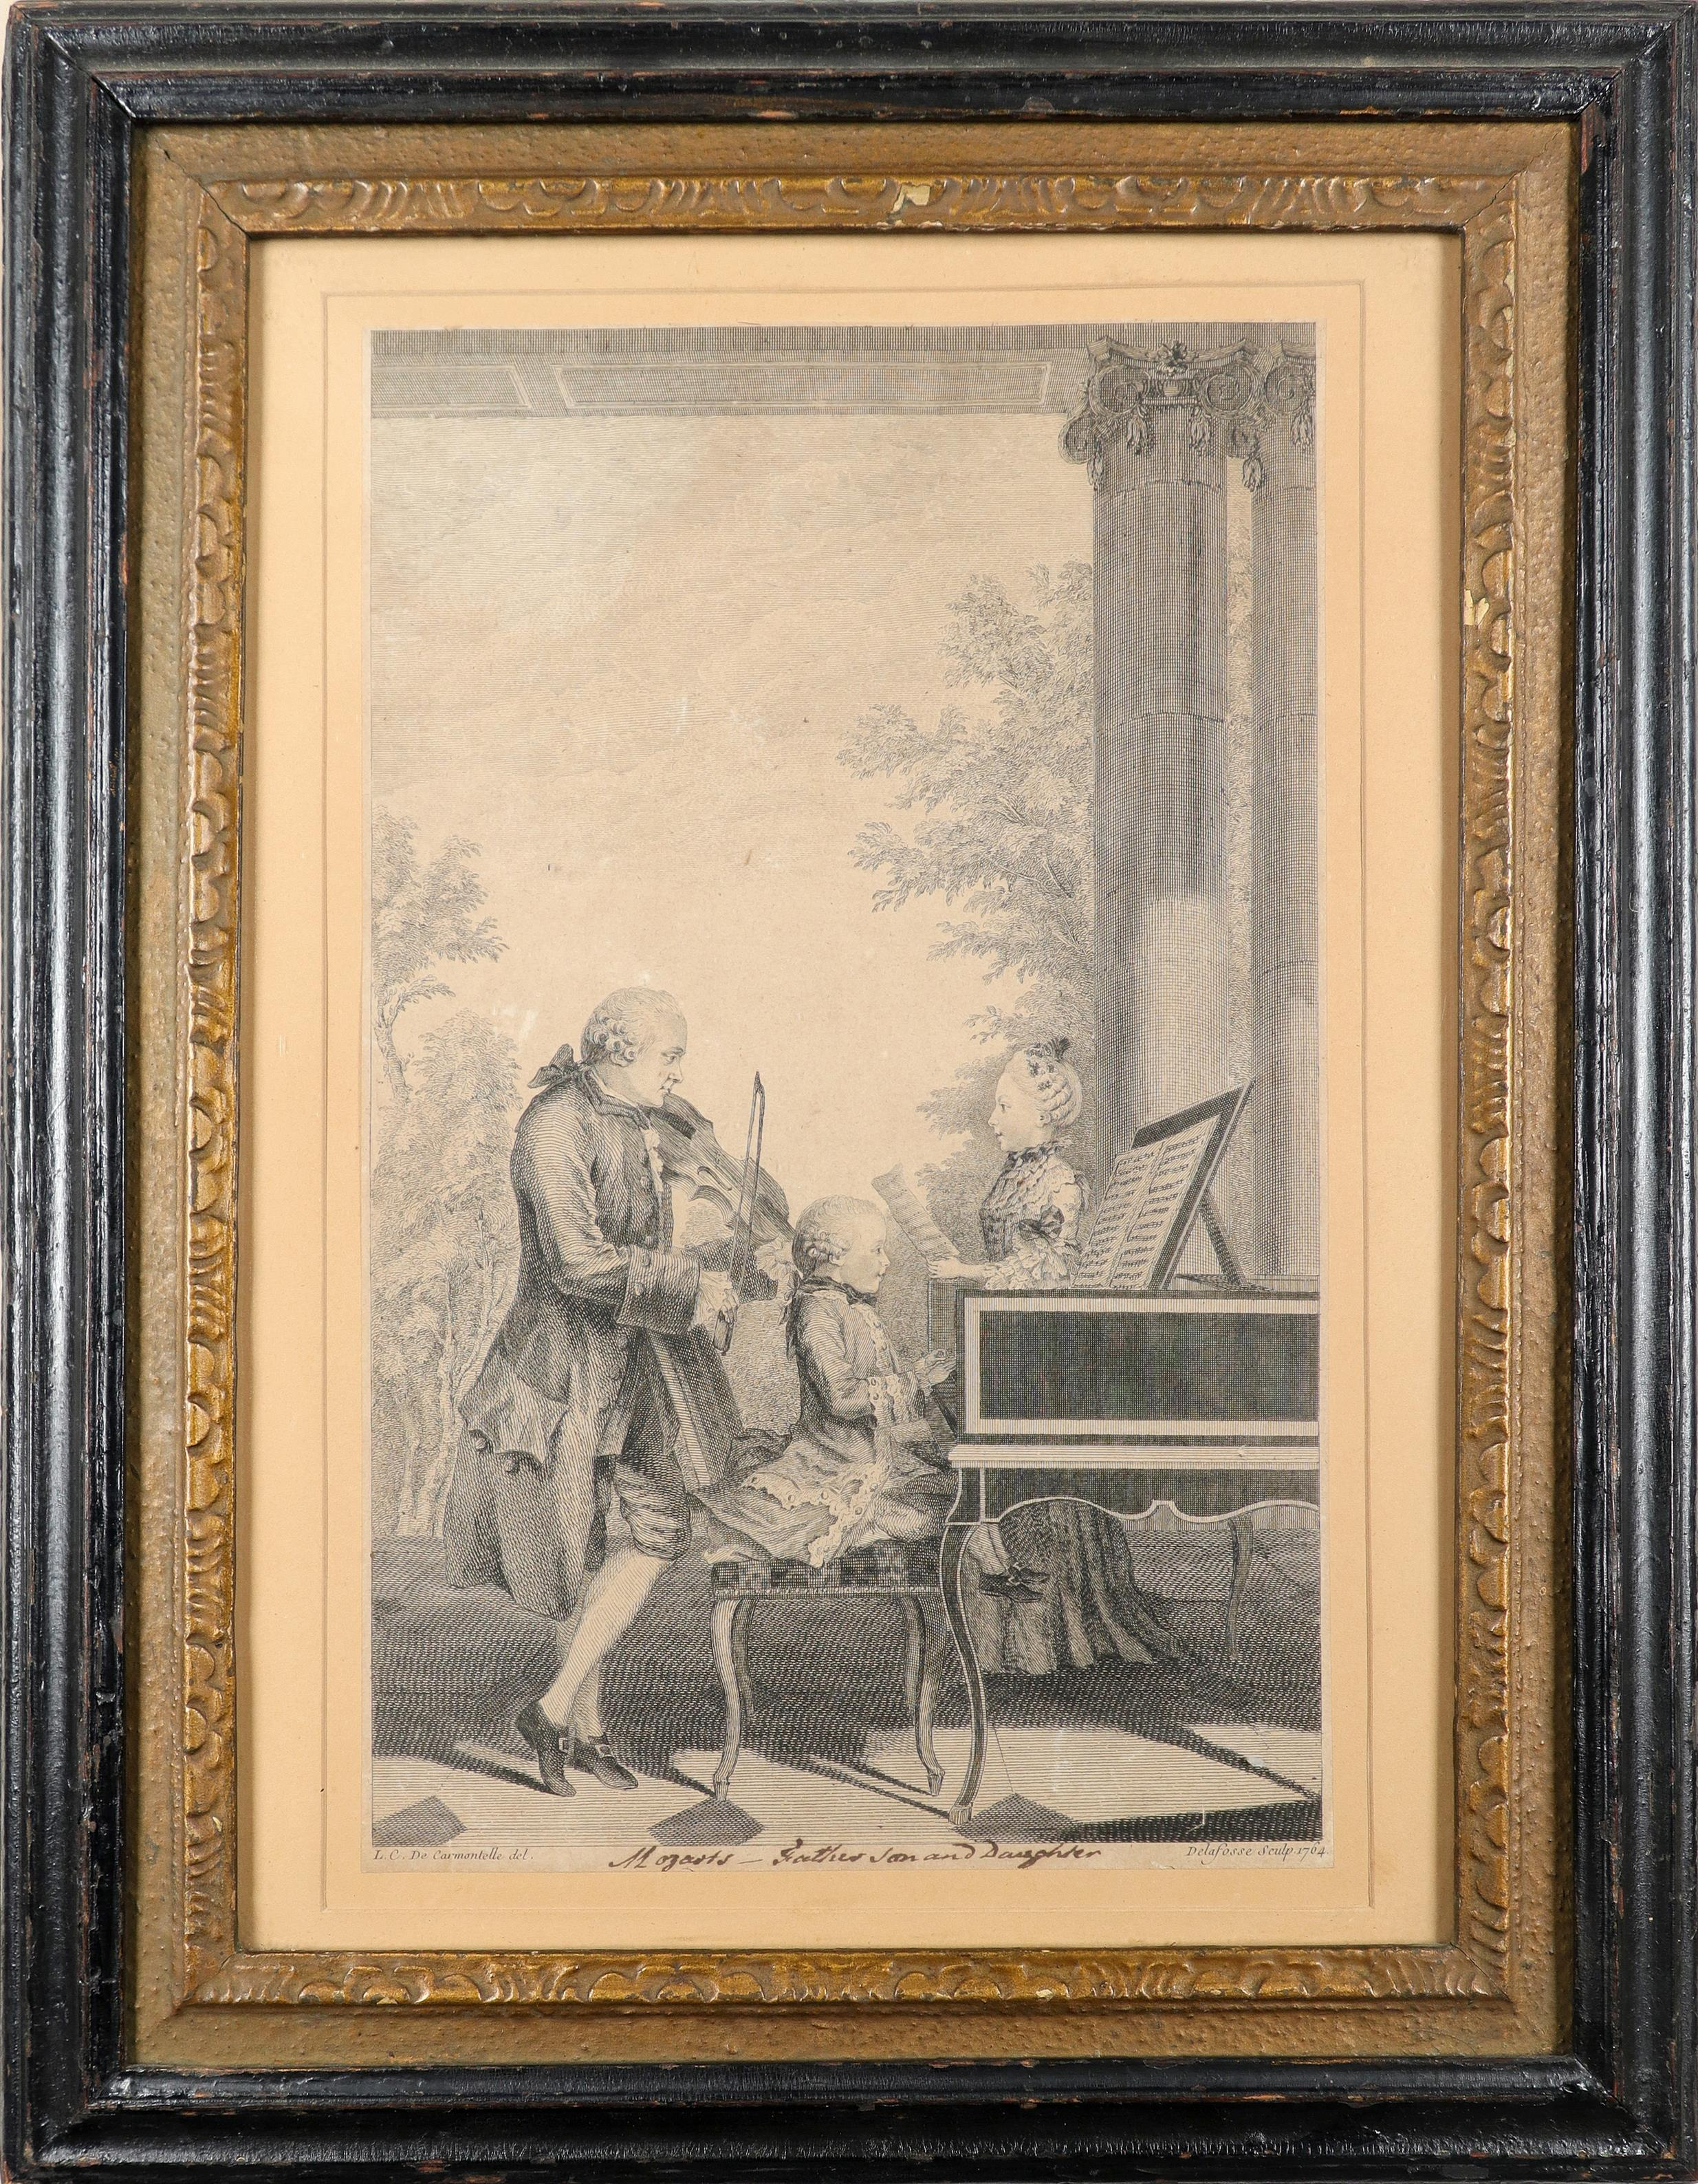 English School 1754 The Charming Brute: A Satire on Handel Etching 33.2 x 23.5cm; 13 x 9¼in ( - Image 5 of 18